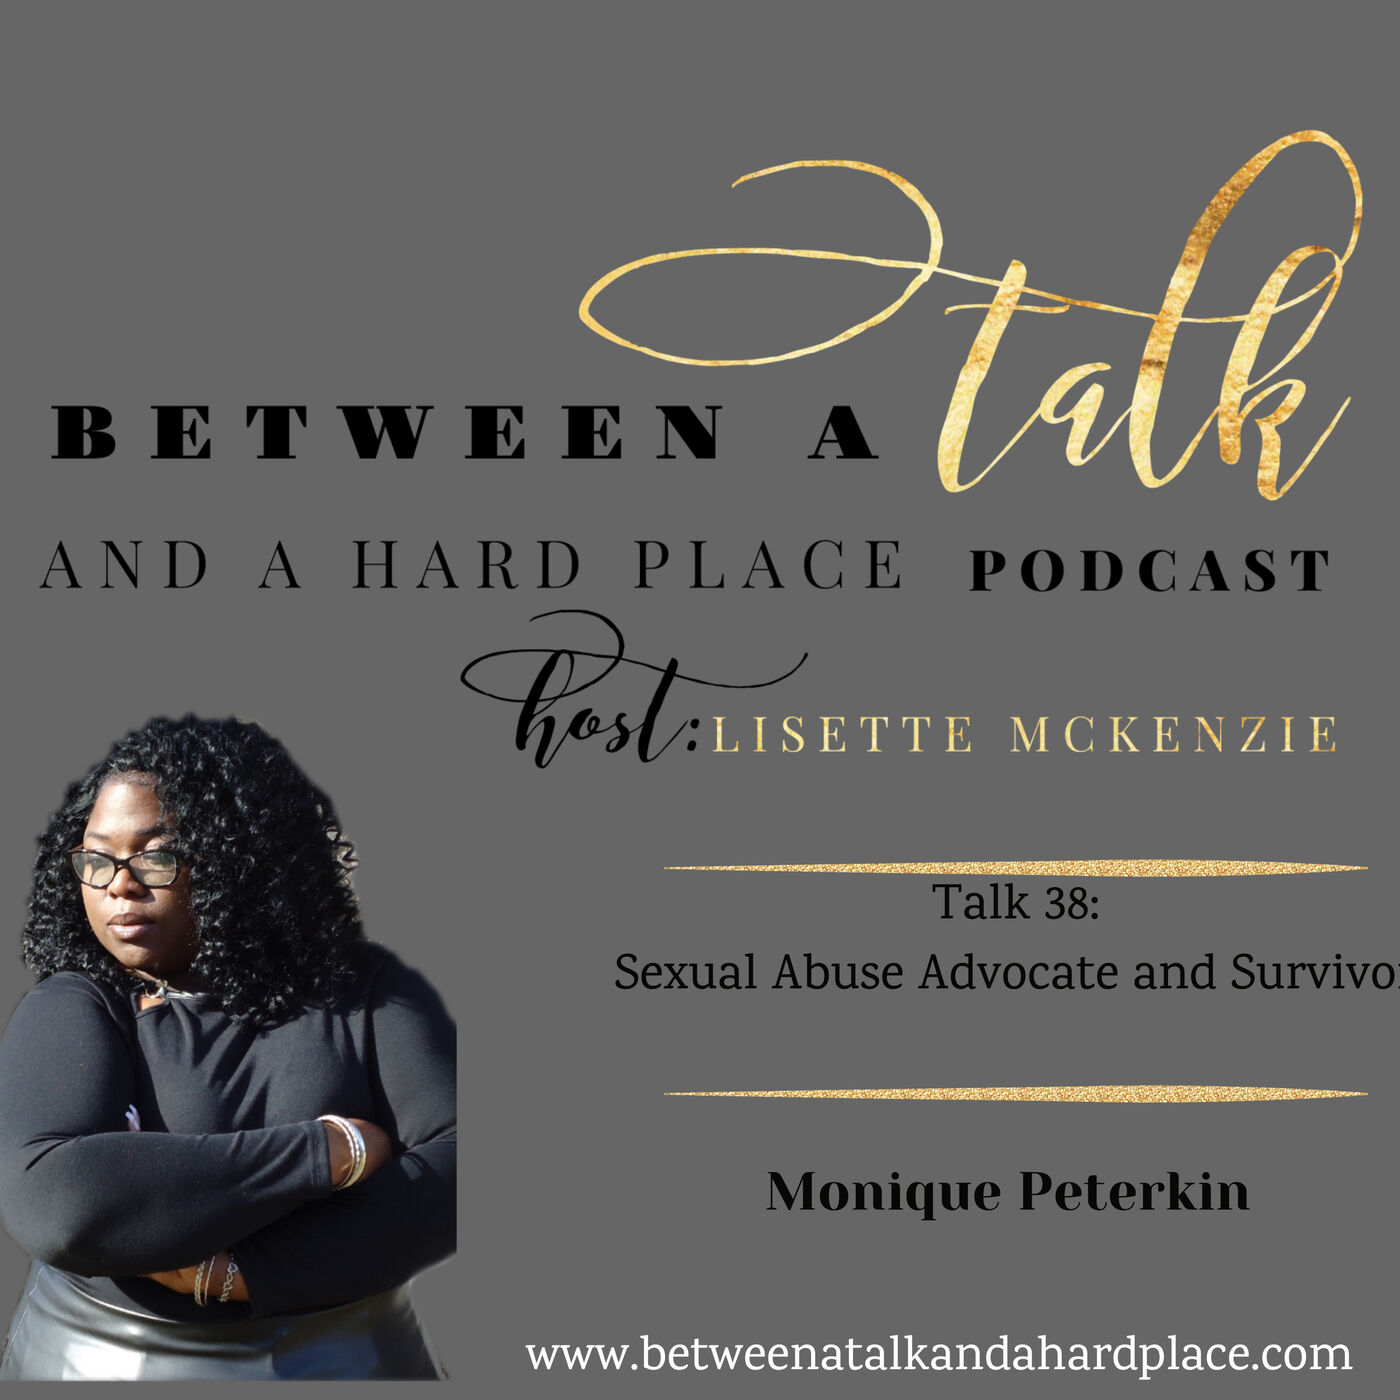 Talk 38: Sexual Abuse Advocate and Survivor Monique Peterkin